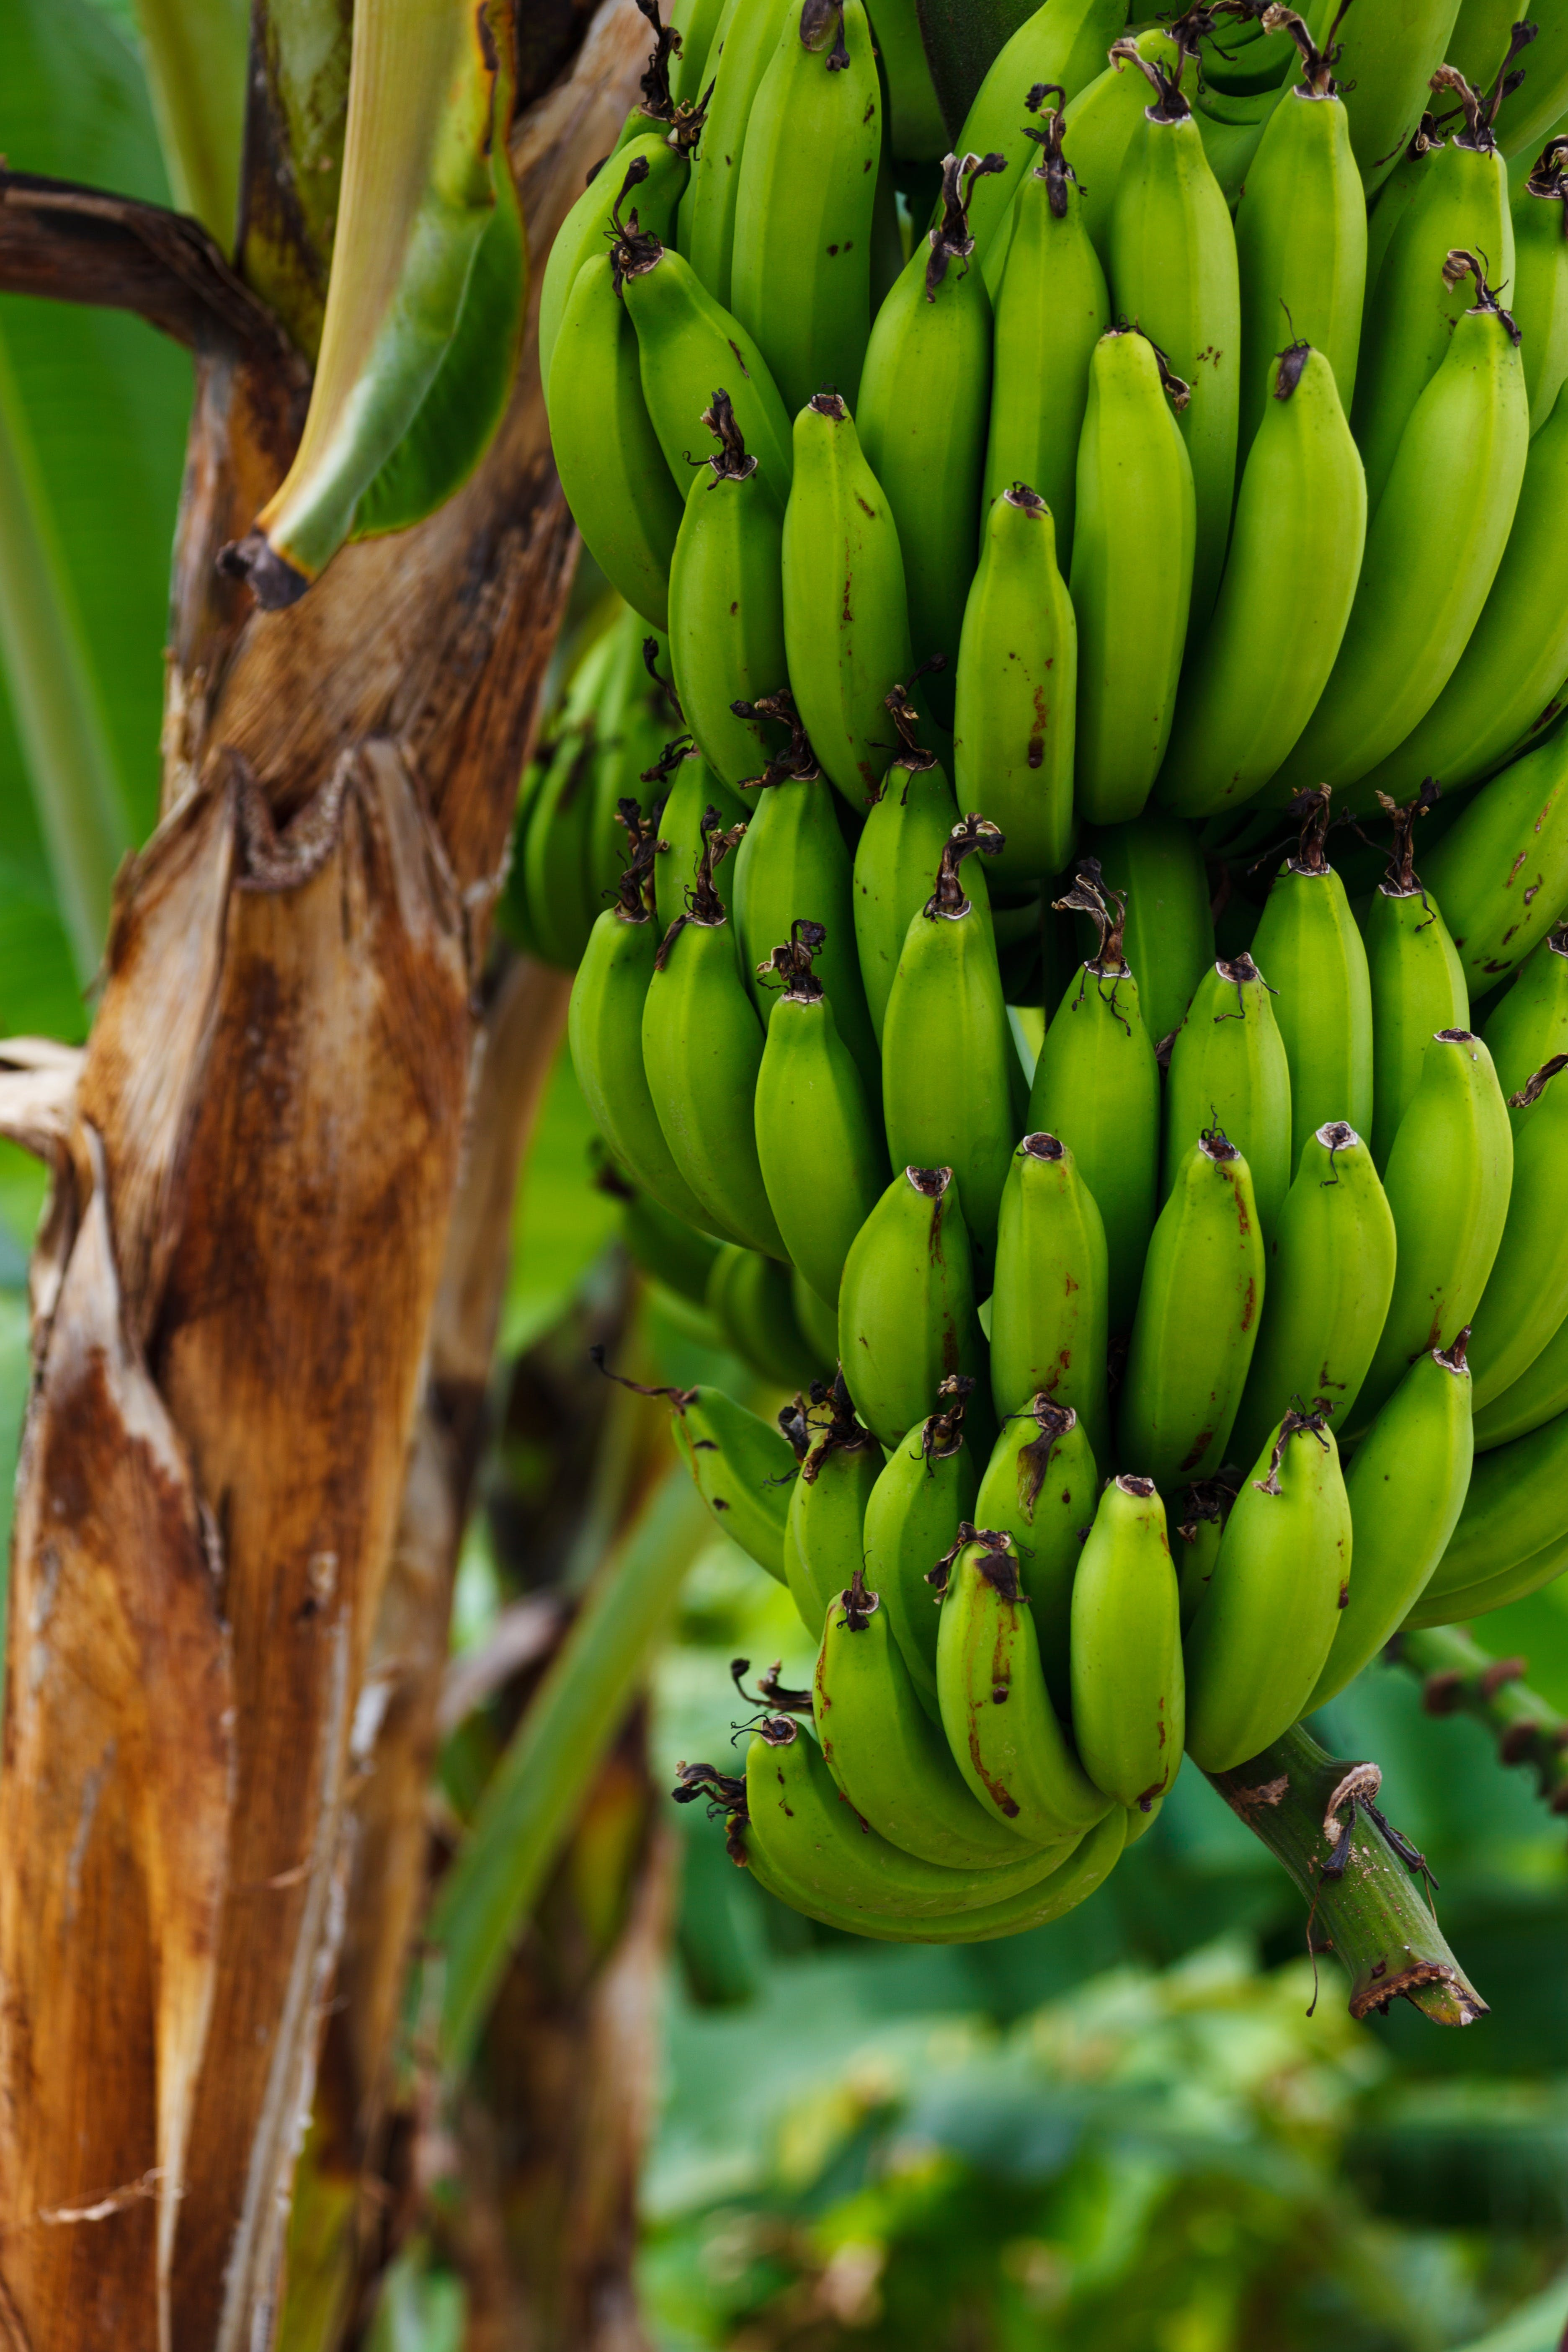 Unripe Banana on Banana Tree